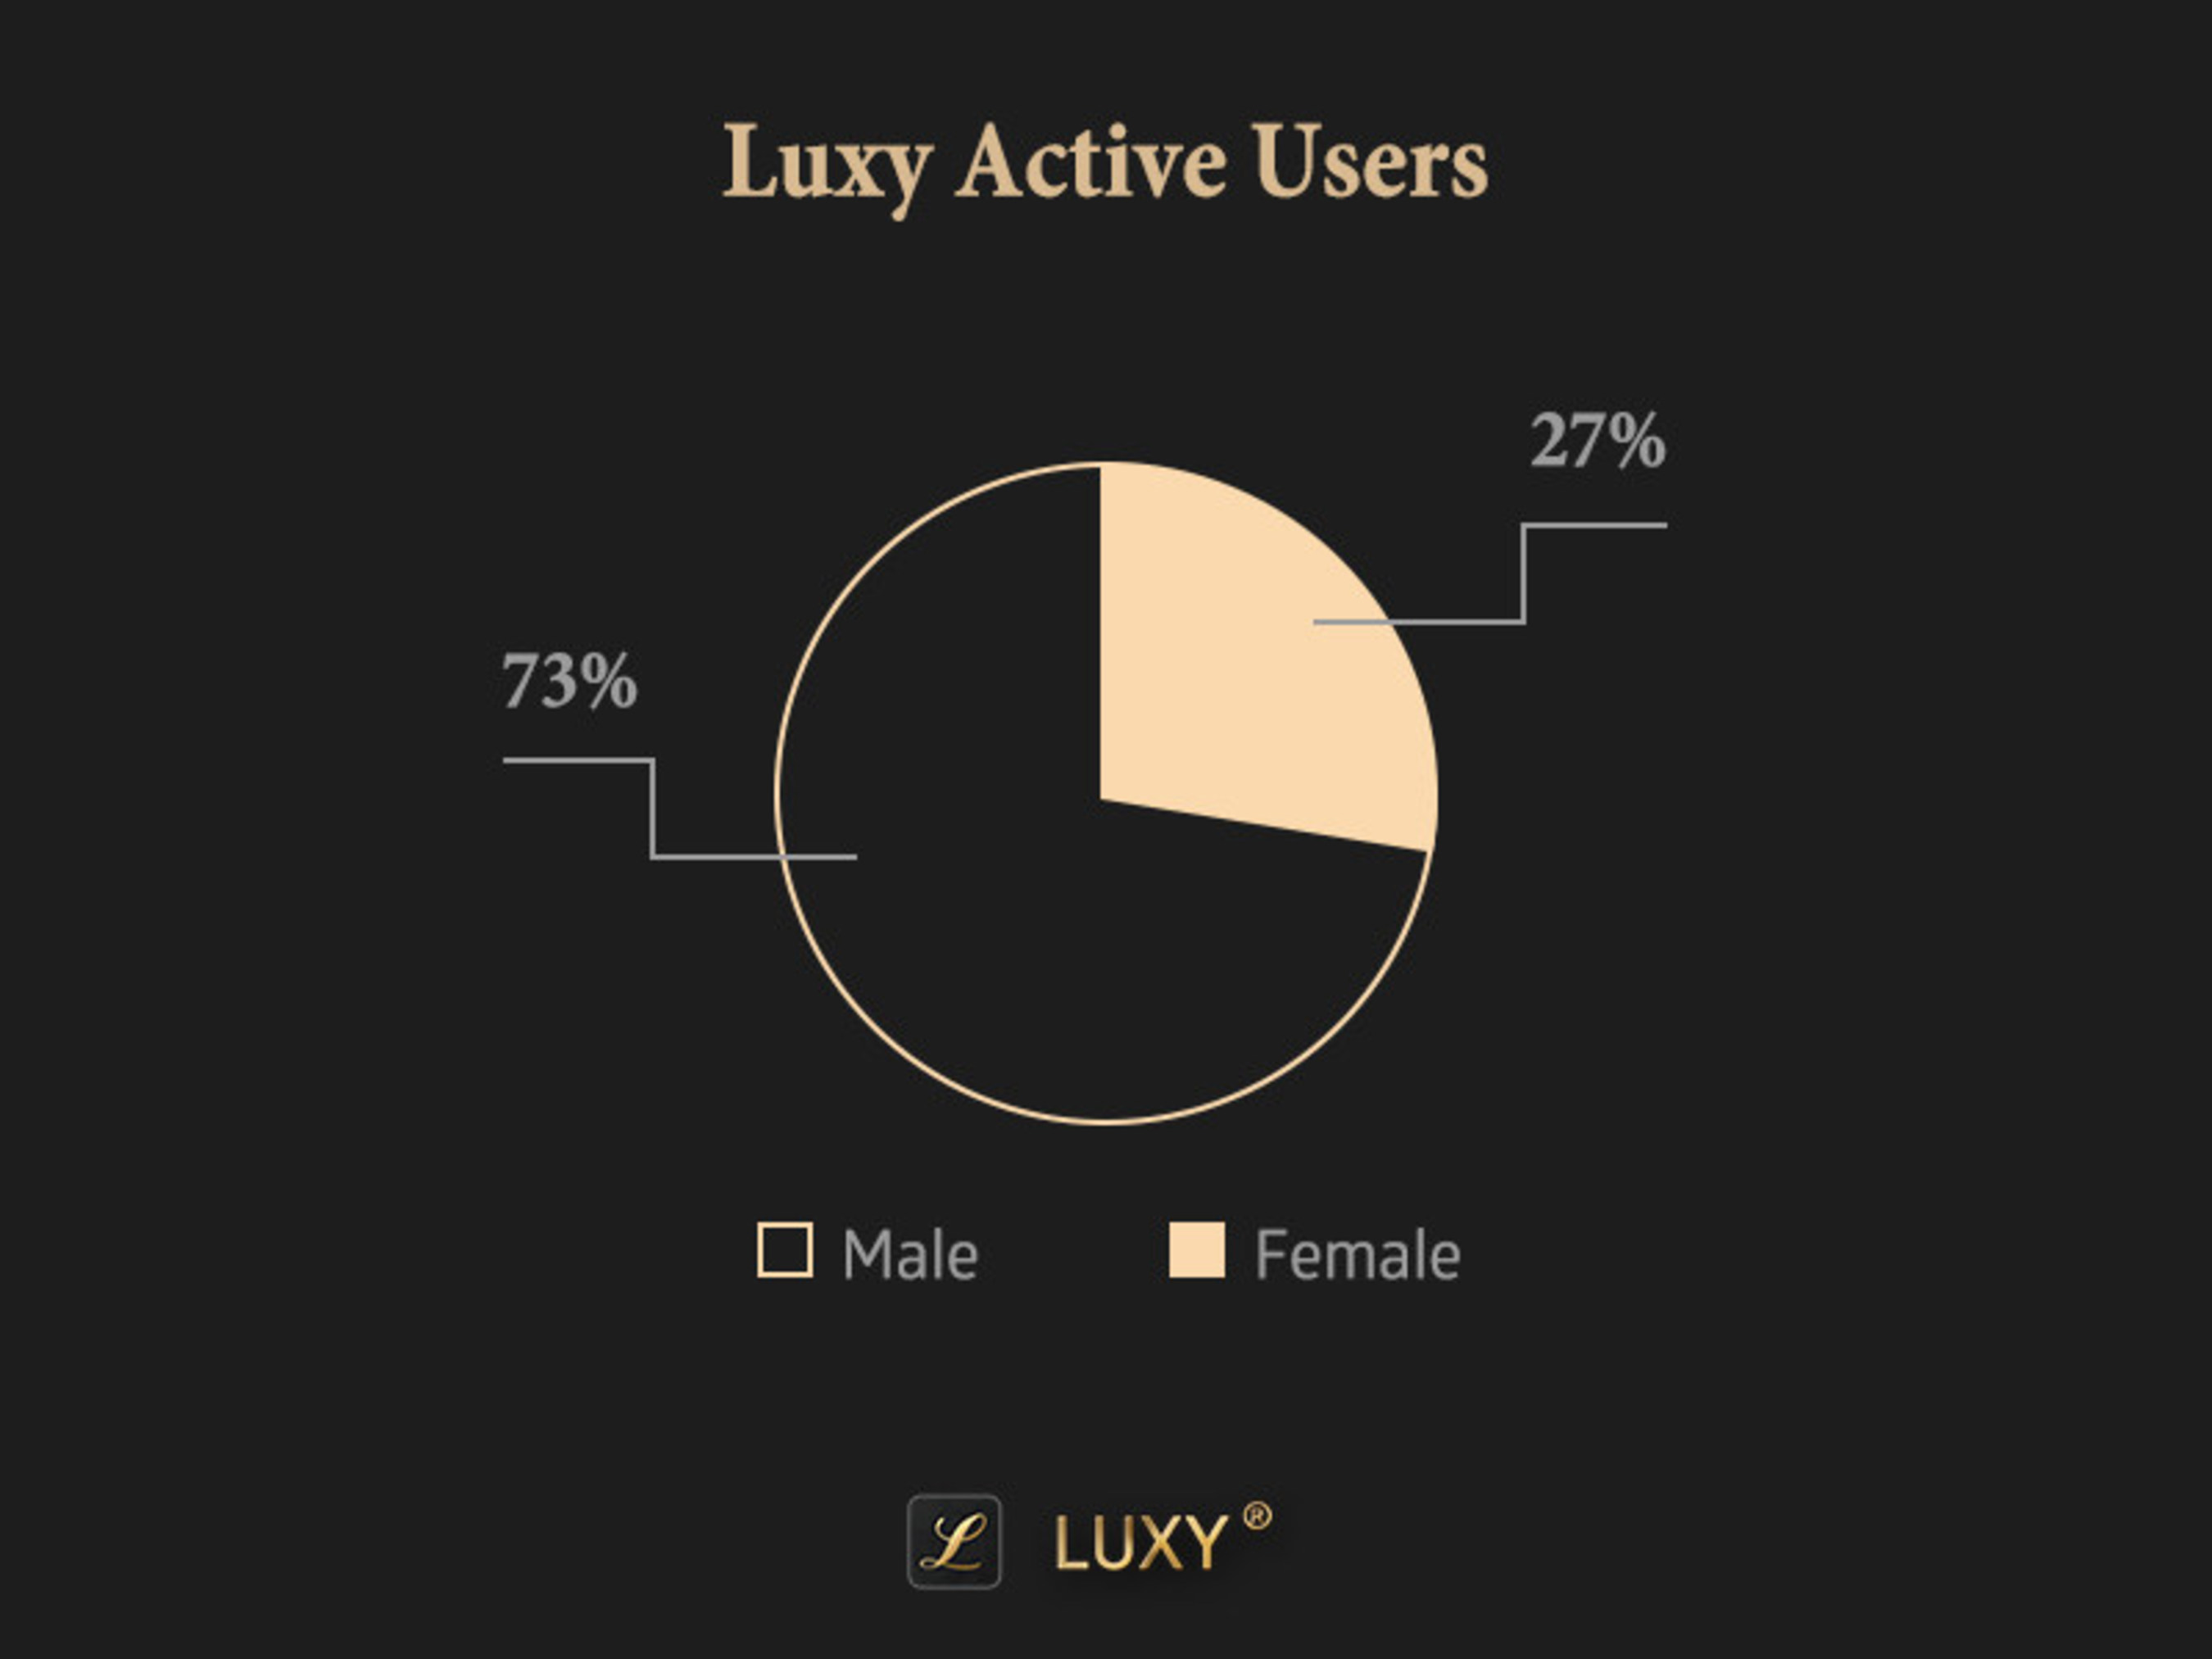 Dating App, or Dating Gap? Luxy Surpasses Its Mainstream Competitors Such as Tinder on User Quality